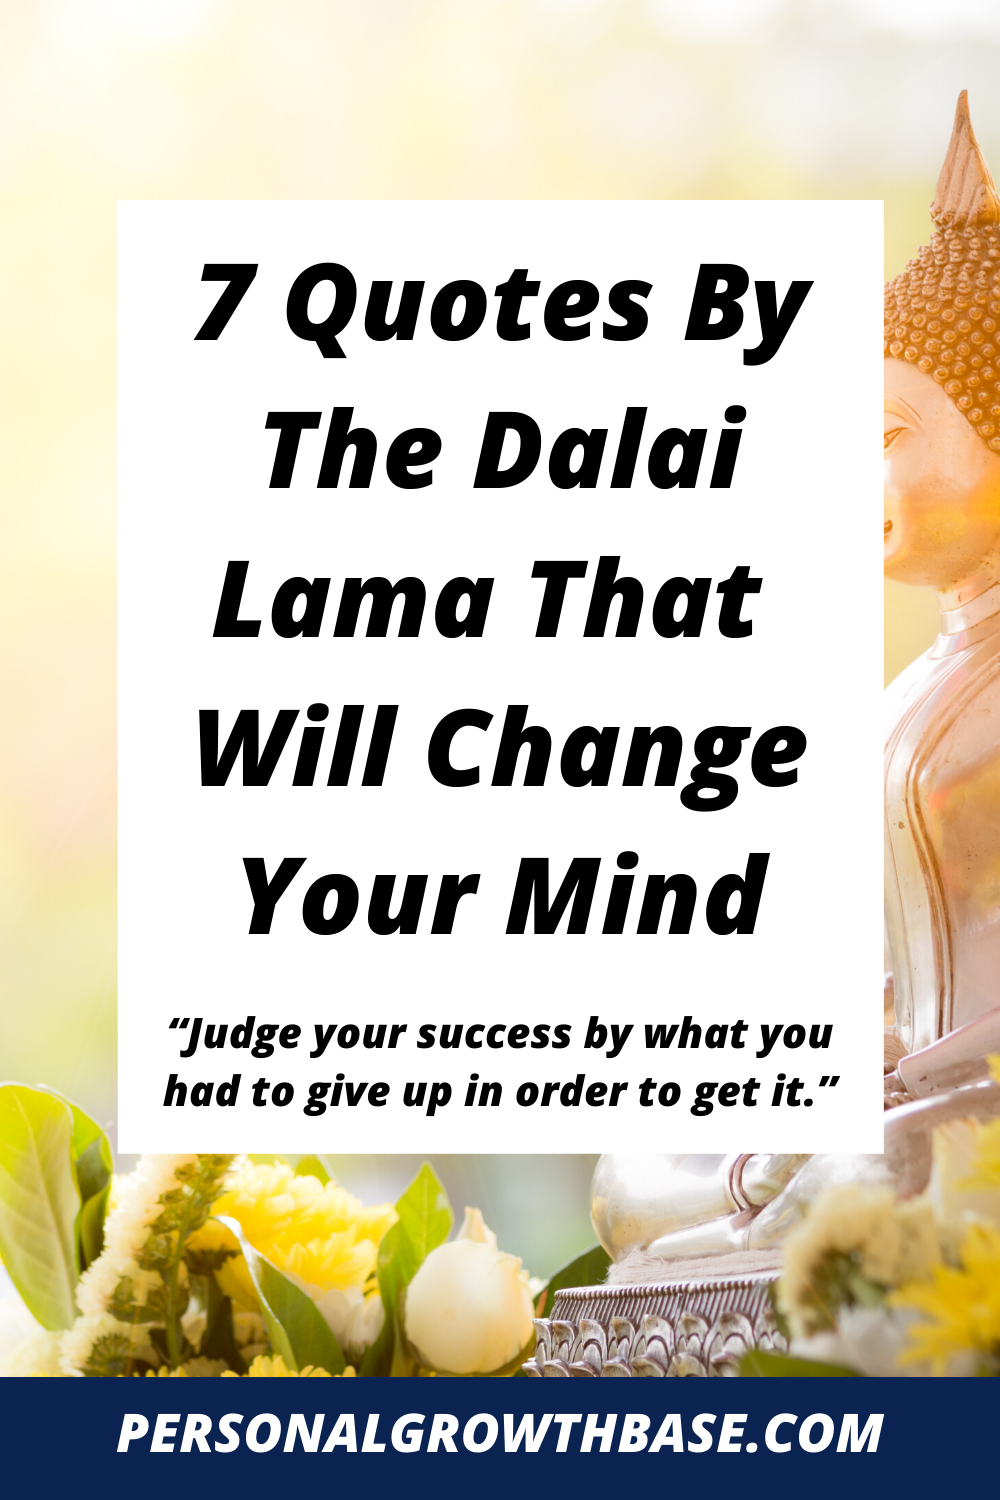 7 Quotes By The Dalai Lama That Will Change Your Mind How Are You Feeling Dalai Lama Mindfulness